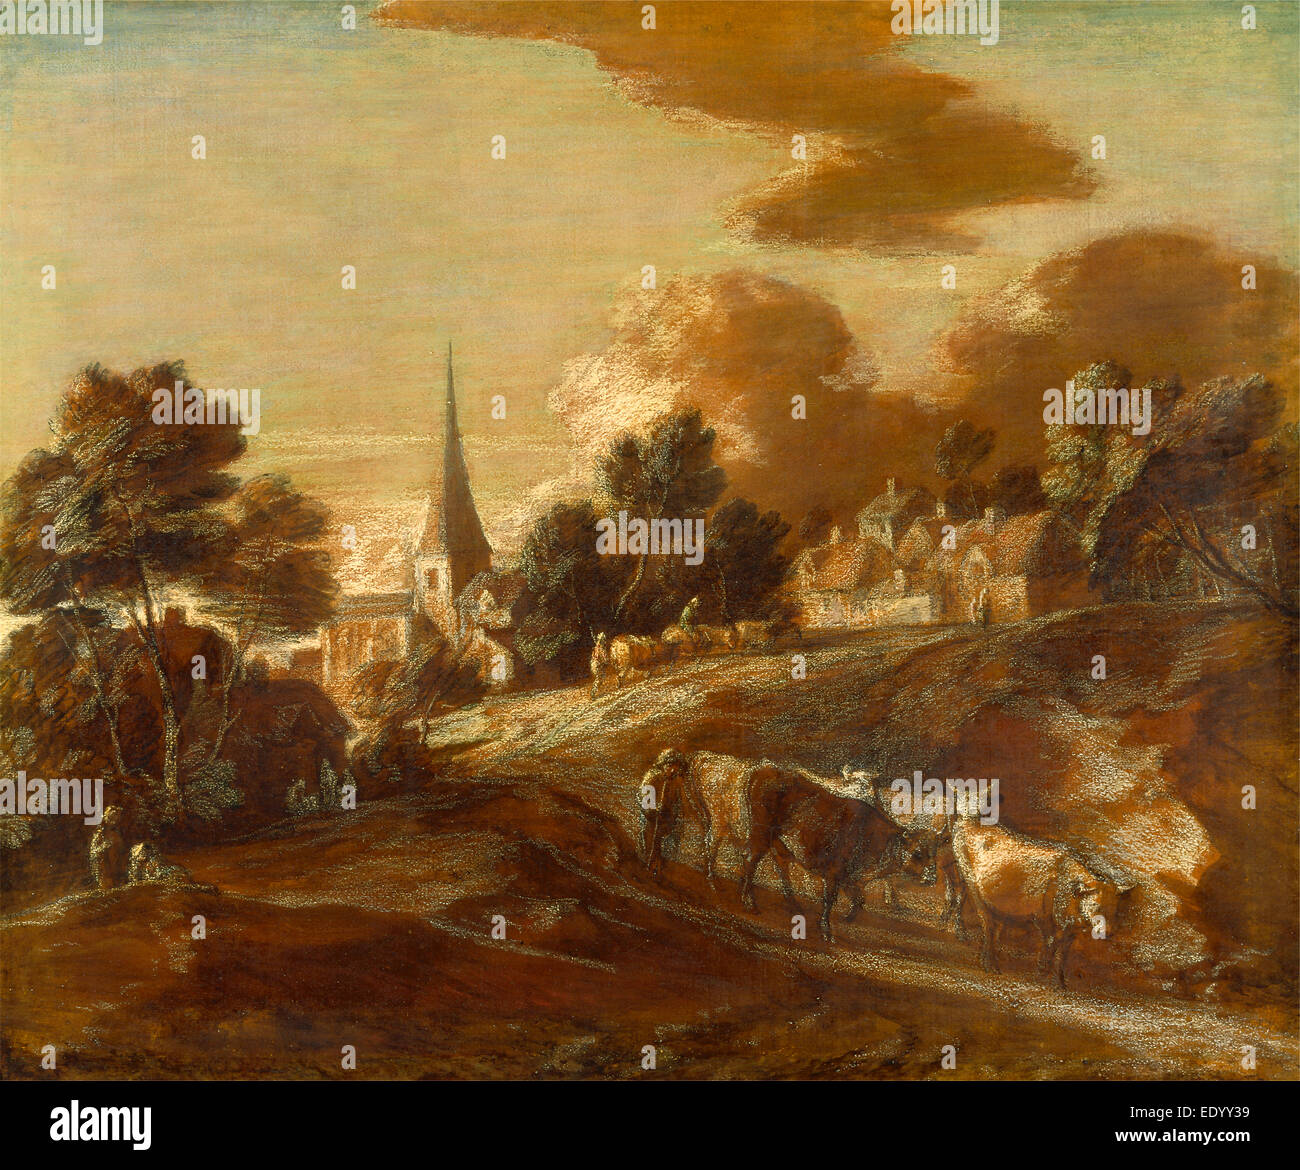 An Imaginary Wooded Village with Drovers and Cattle, Thomas Gainsborough, 1727-1788, British - Stock Image